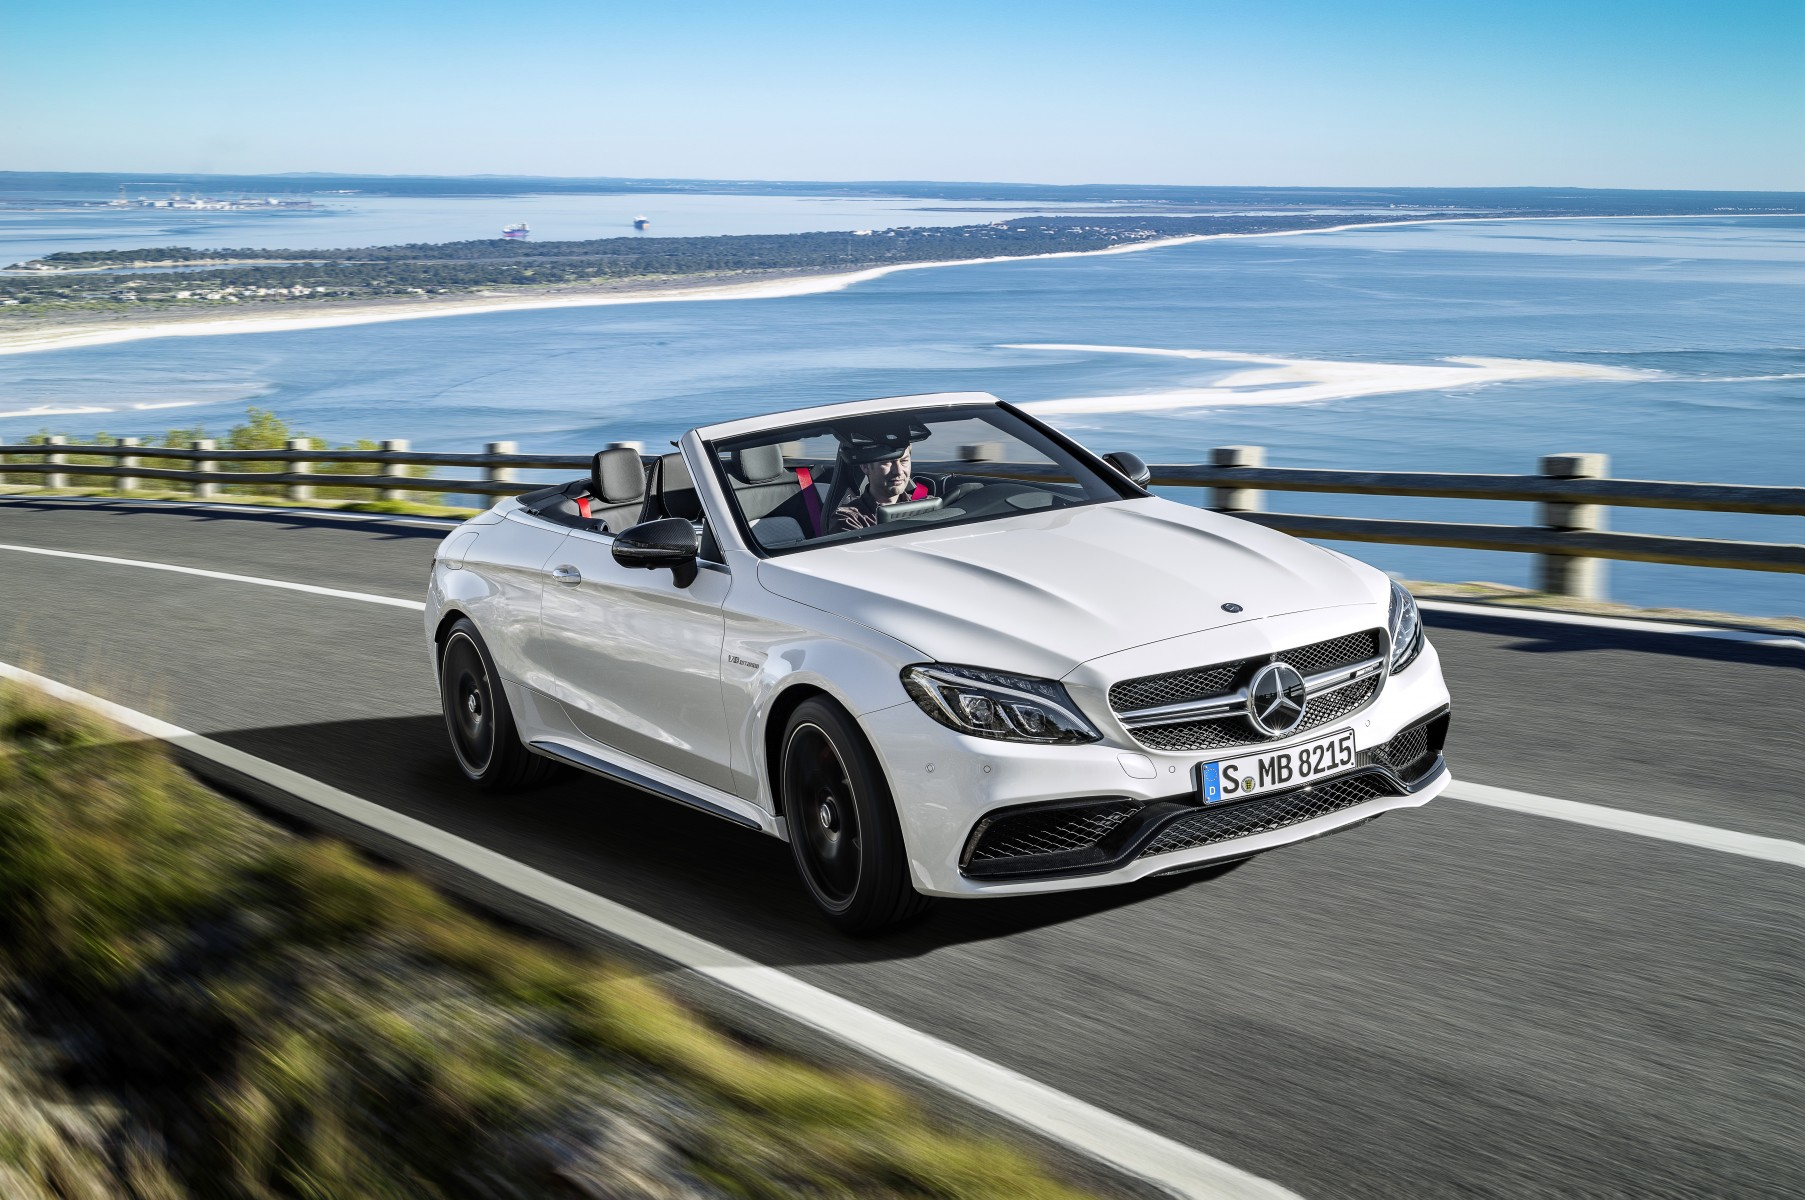 Mercedes-AMG C 63 S Cabriolet (A205) 2016; exterior: designo diamond white bright; interior: AMG nappa leather platinium white pearl/black; Fuel consumption, combined (l/100 km): 8.9; CO2 emissions, combined (g/km): 208